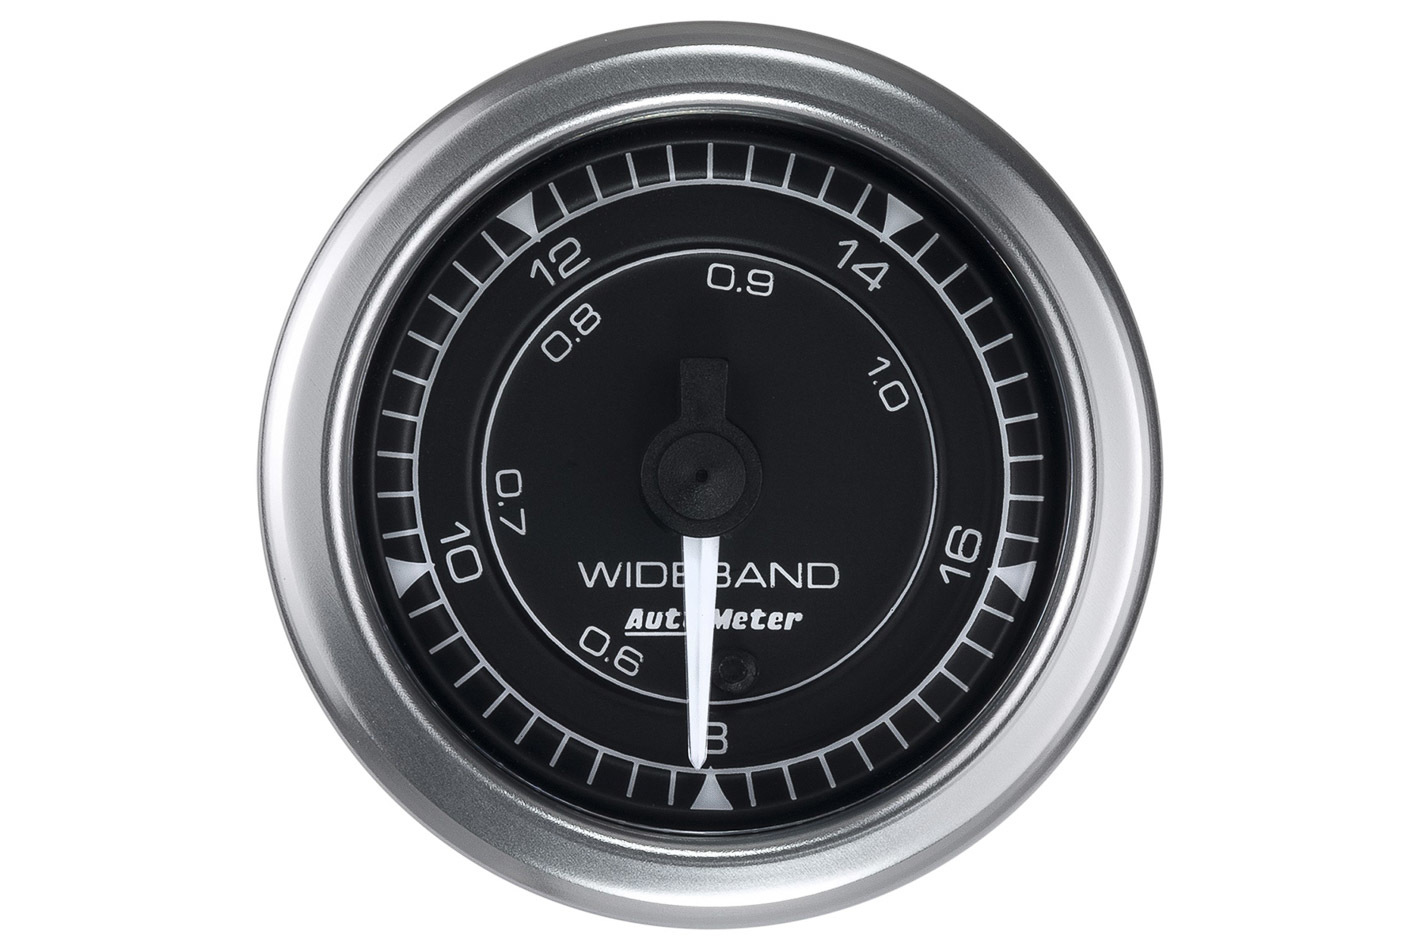 Auto Meter 8170 Air-Fuel Ratio Gauge, Chrono Series, Wideband, 8:1-18:1 AFR, Electric, Analog, Full Sweep, 2-1/16 in Diameter, Black Face, Each